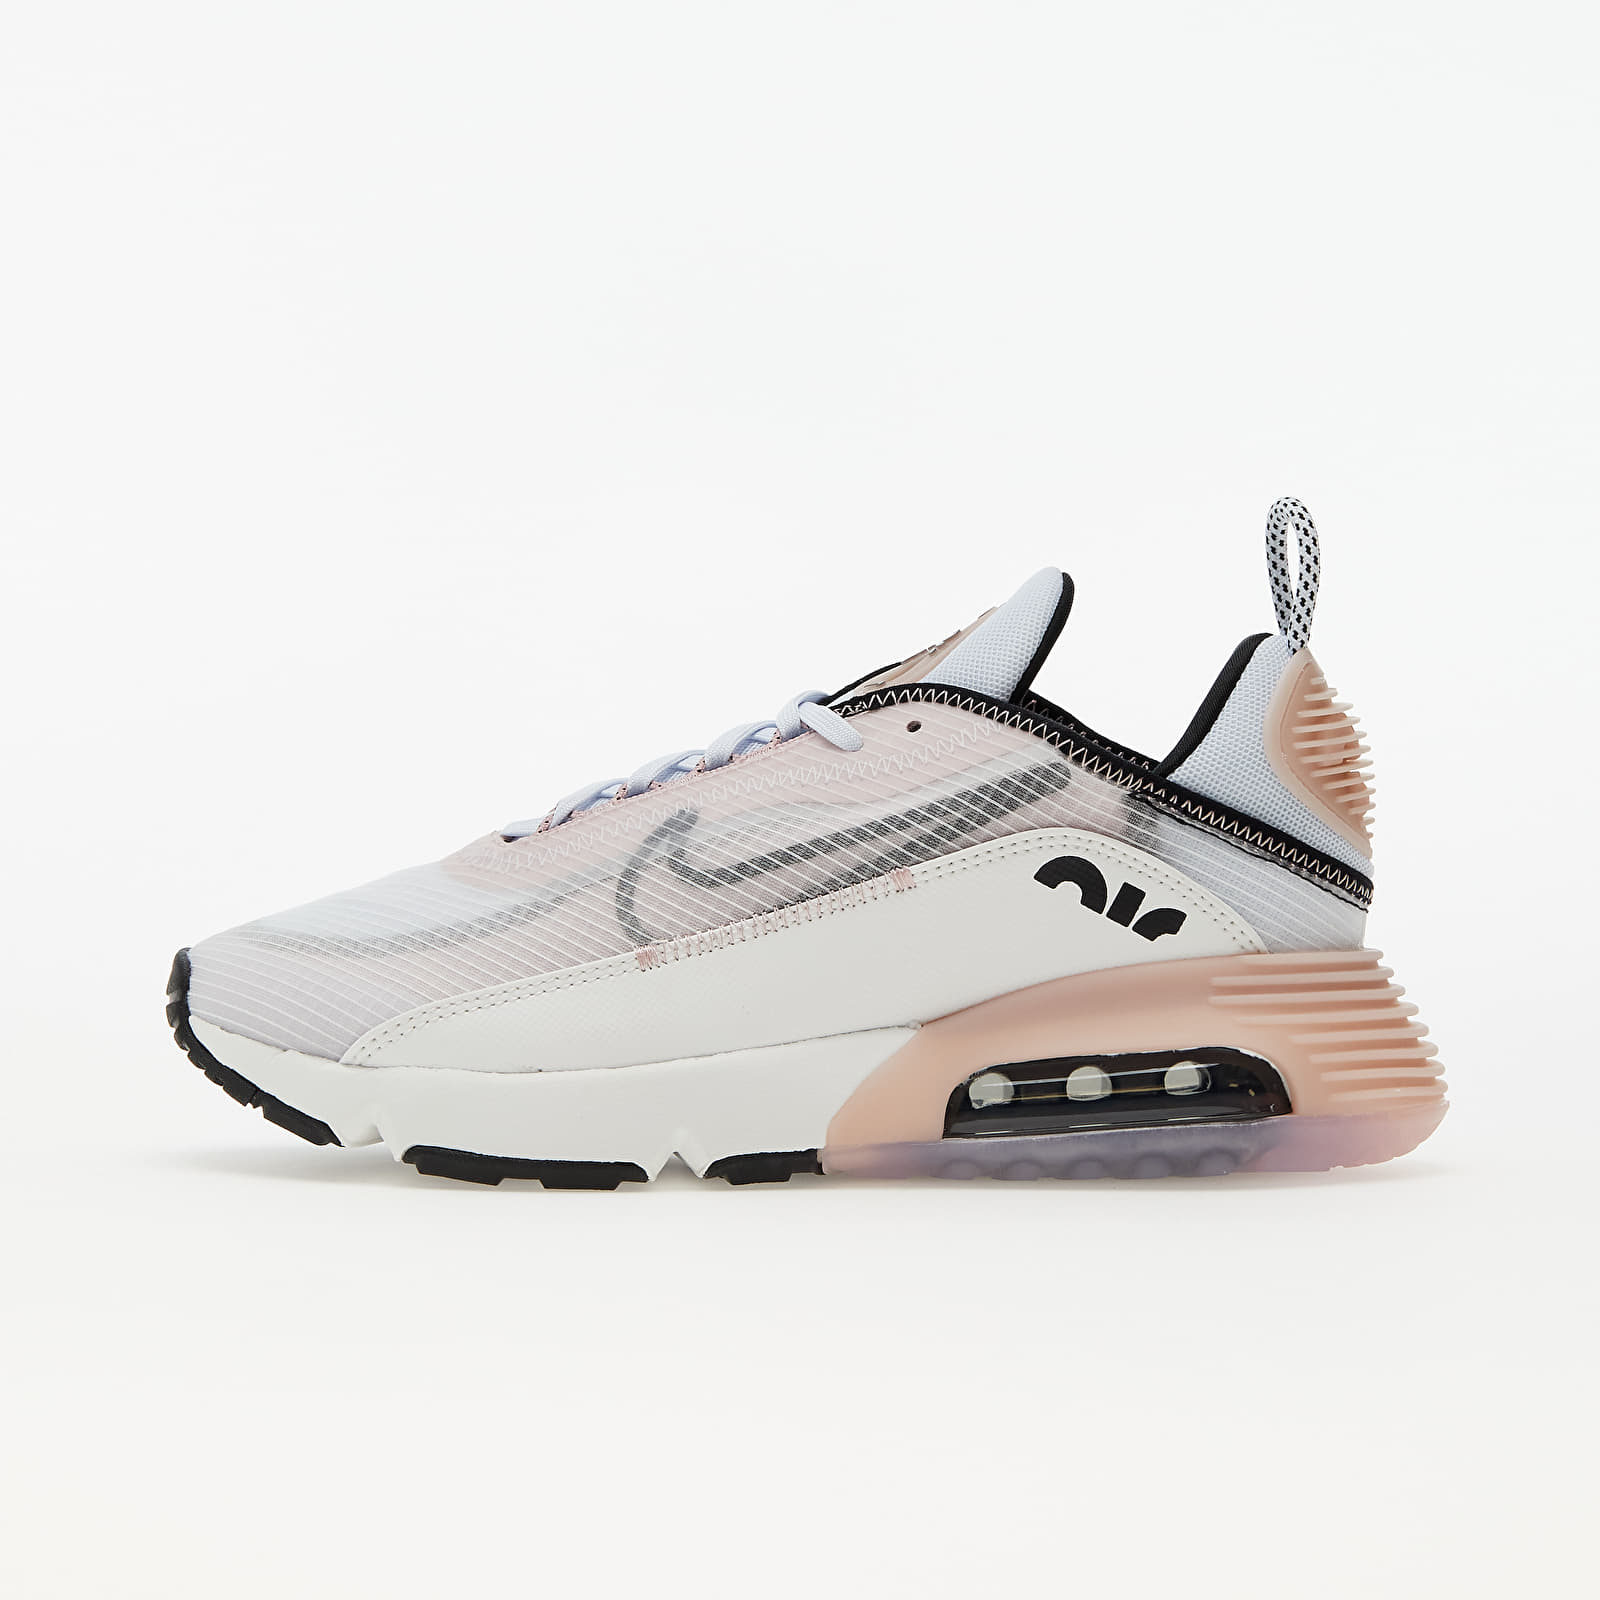 Nike W Air Max 2090 Summit White/ Black-Champagne EUR 38.5